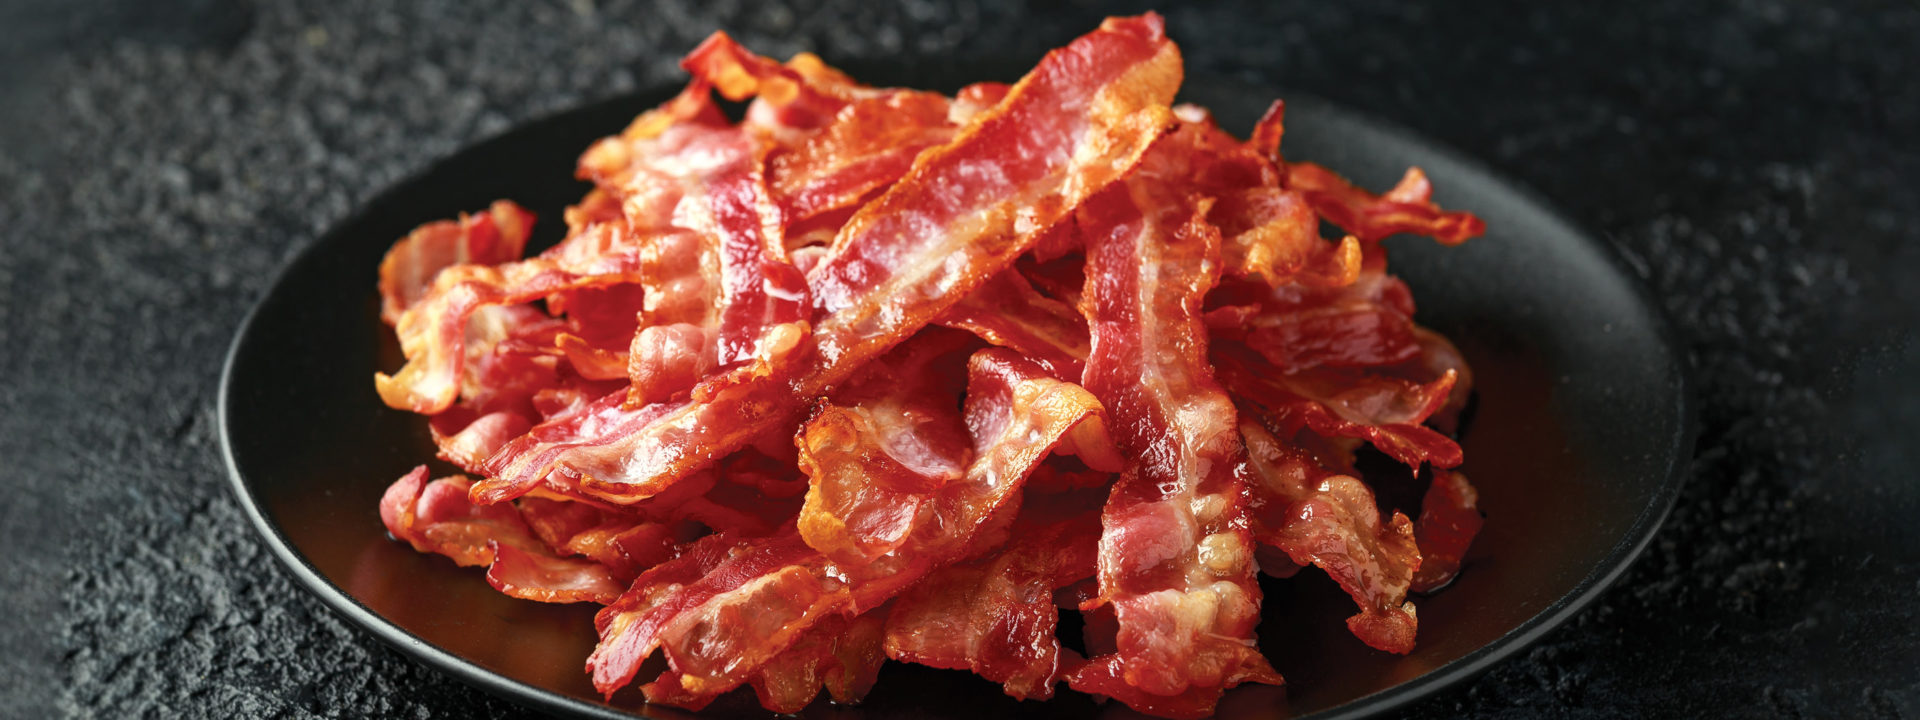 Stack of cooked bacon on a black plate on a black concrete countertop